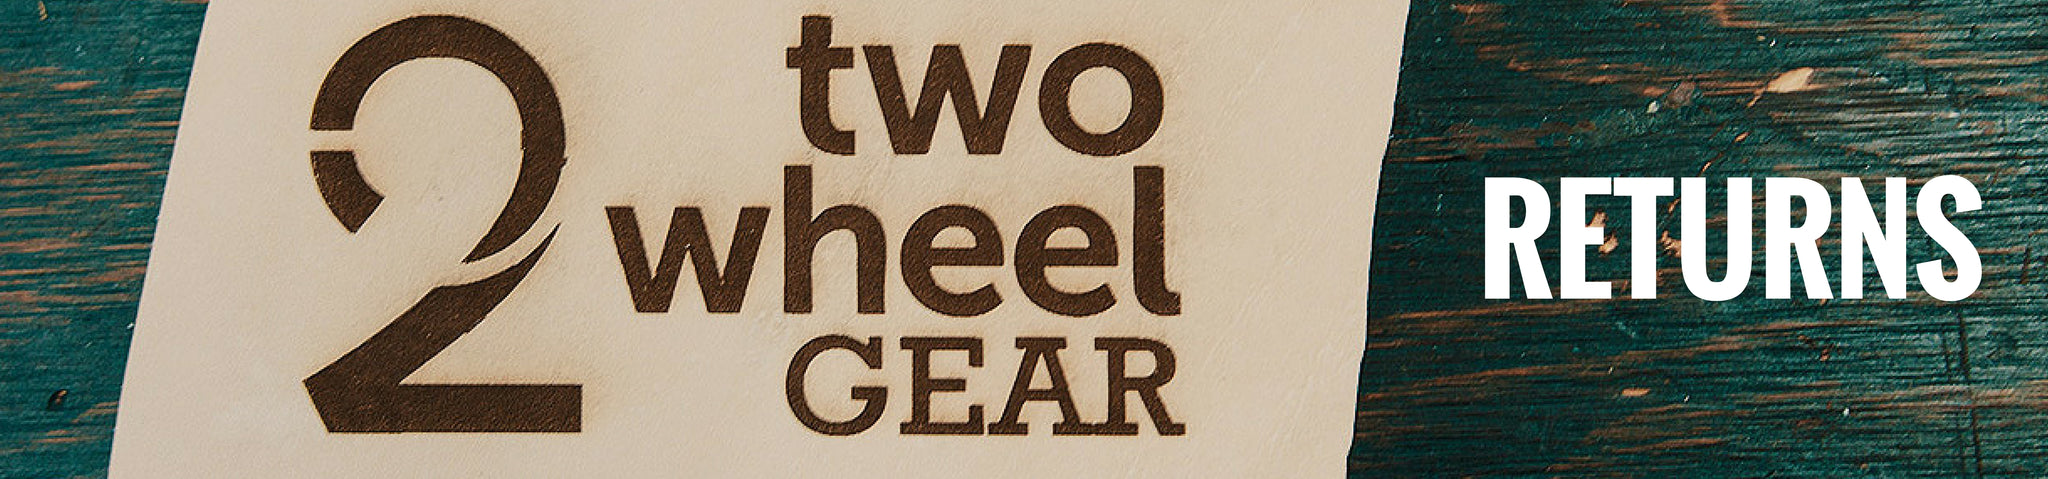 Two Wheel Gear Product Returns Sign